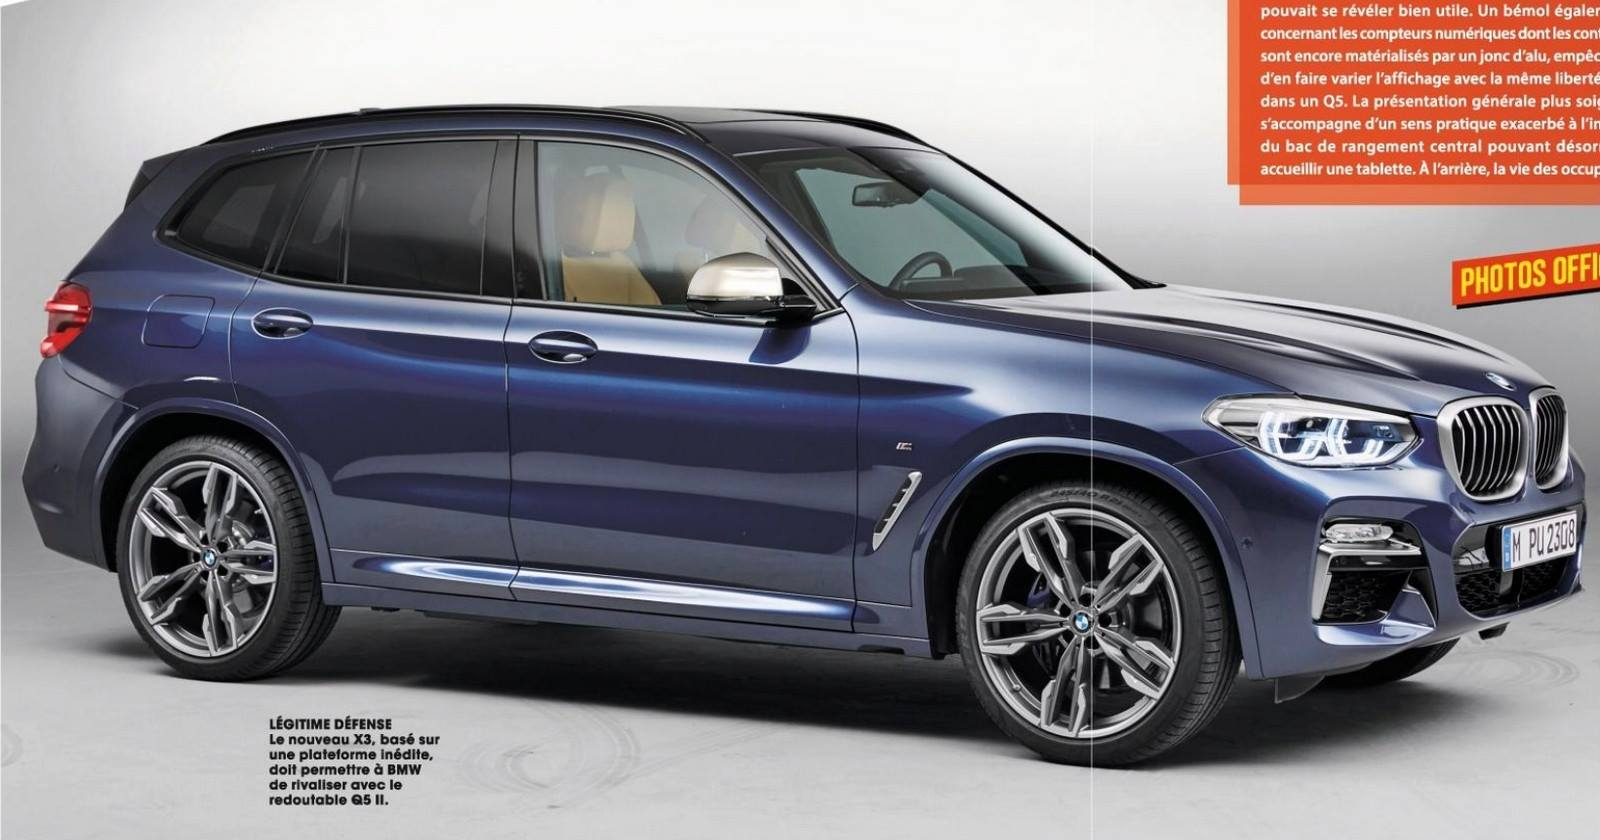 2018 bmw x3 official photos and details leaked including m40i autoevolution. Black Bedroom Furniture Sets. Home Design Ideas